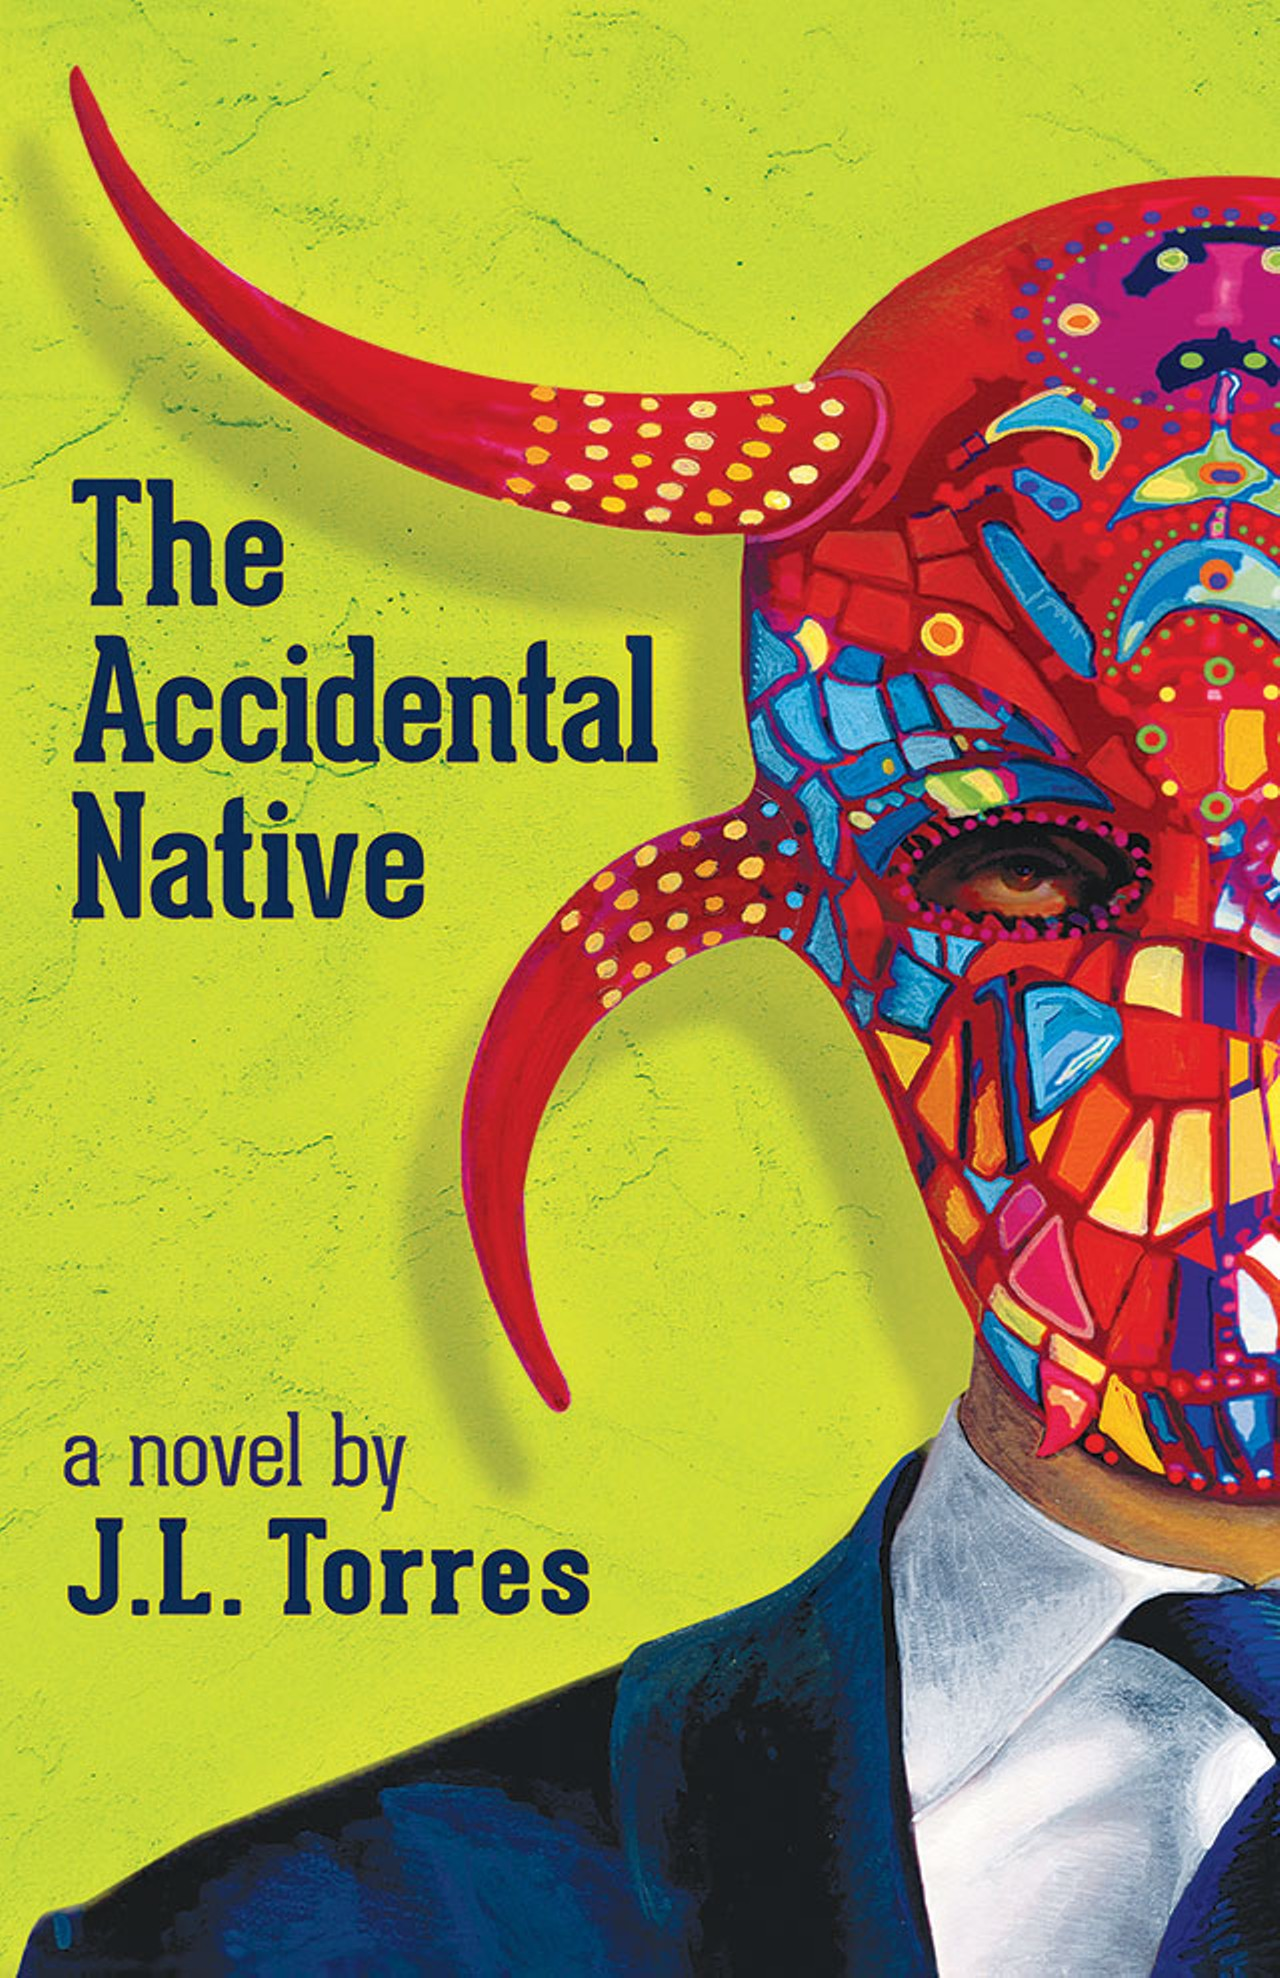 Review The Accidental